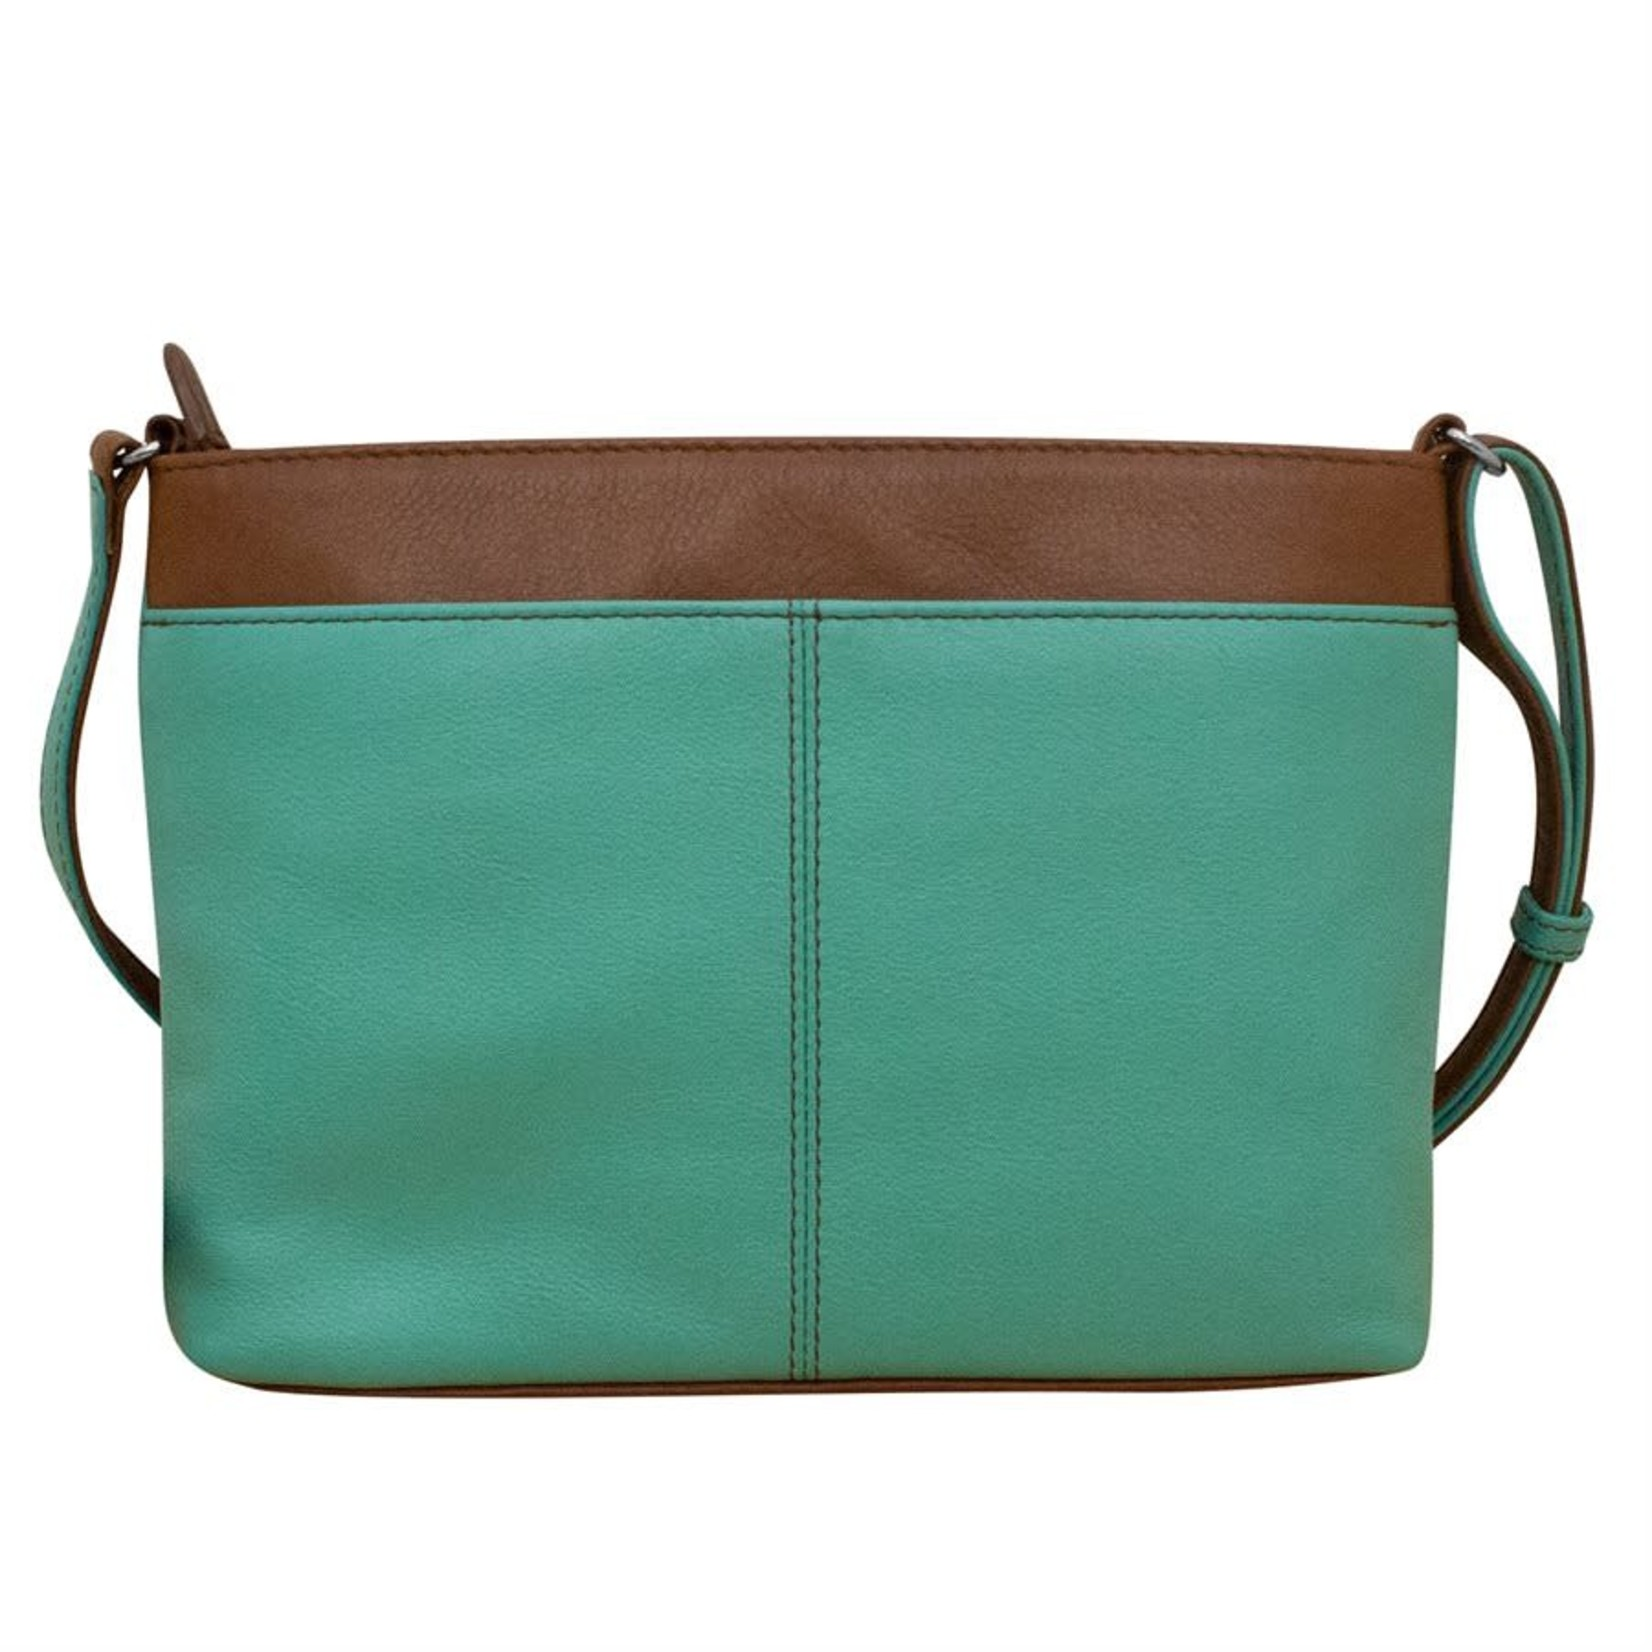 Leather Handbags and Accessories 6592 Turquoise/Toffee - Organizer Crossbody